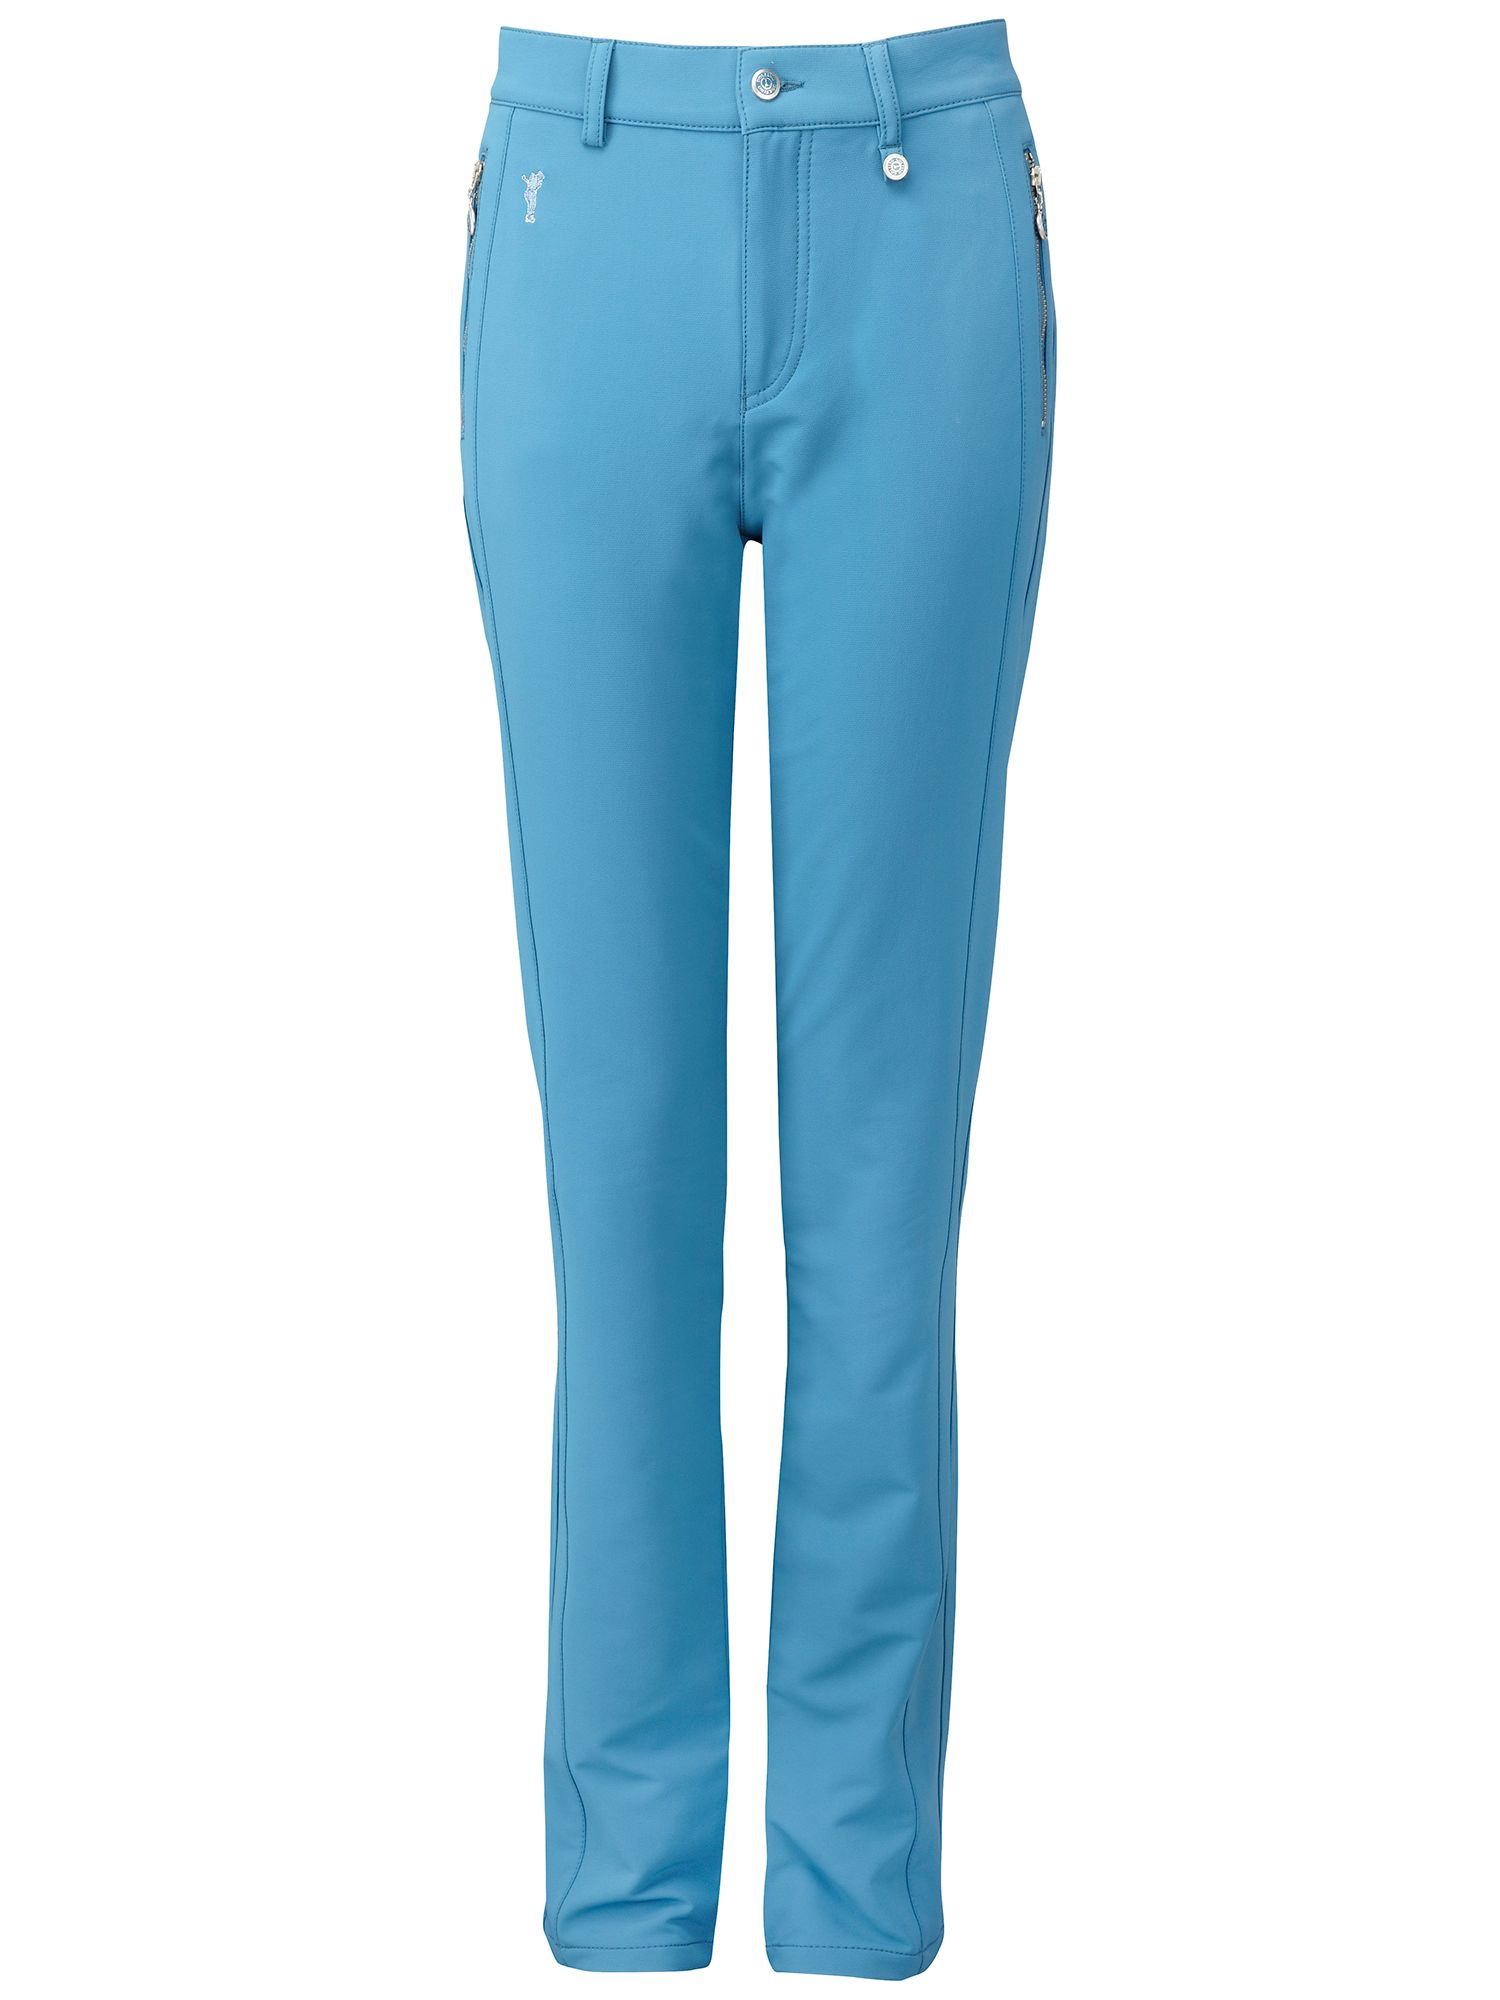 4way stretch brushed trousers